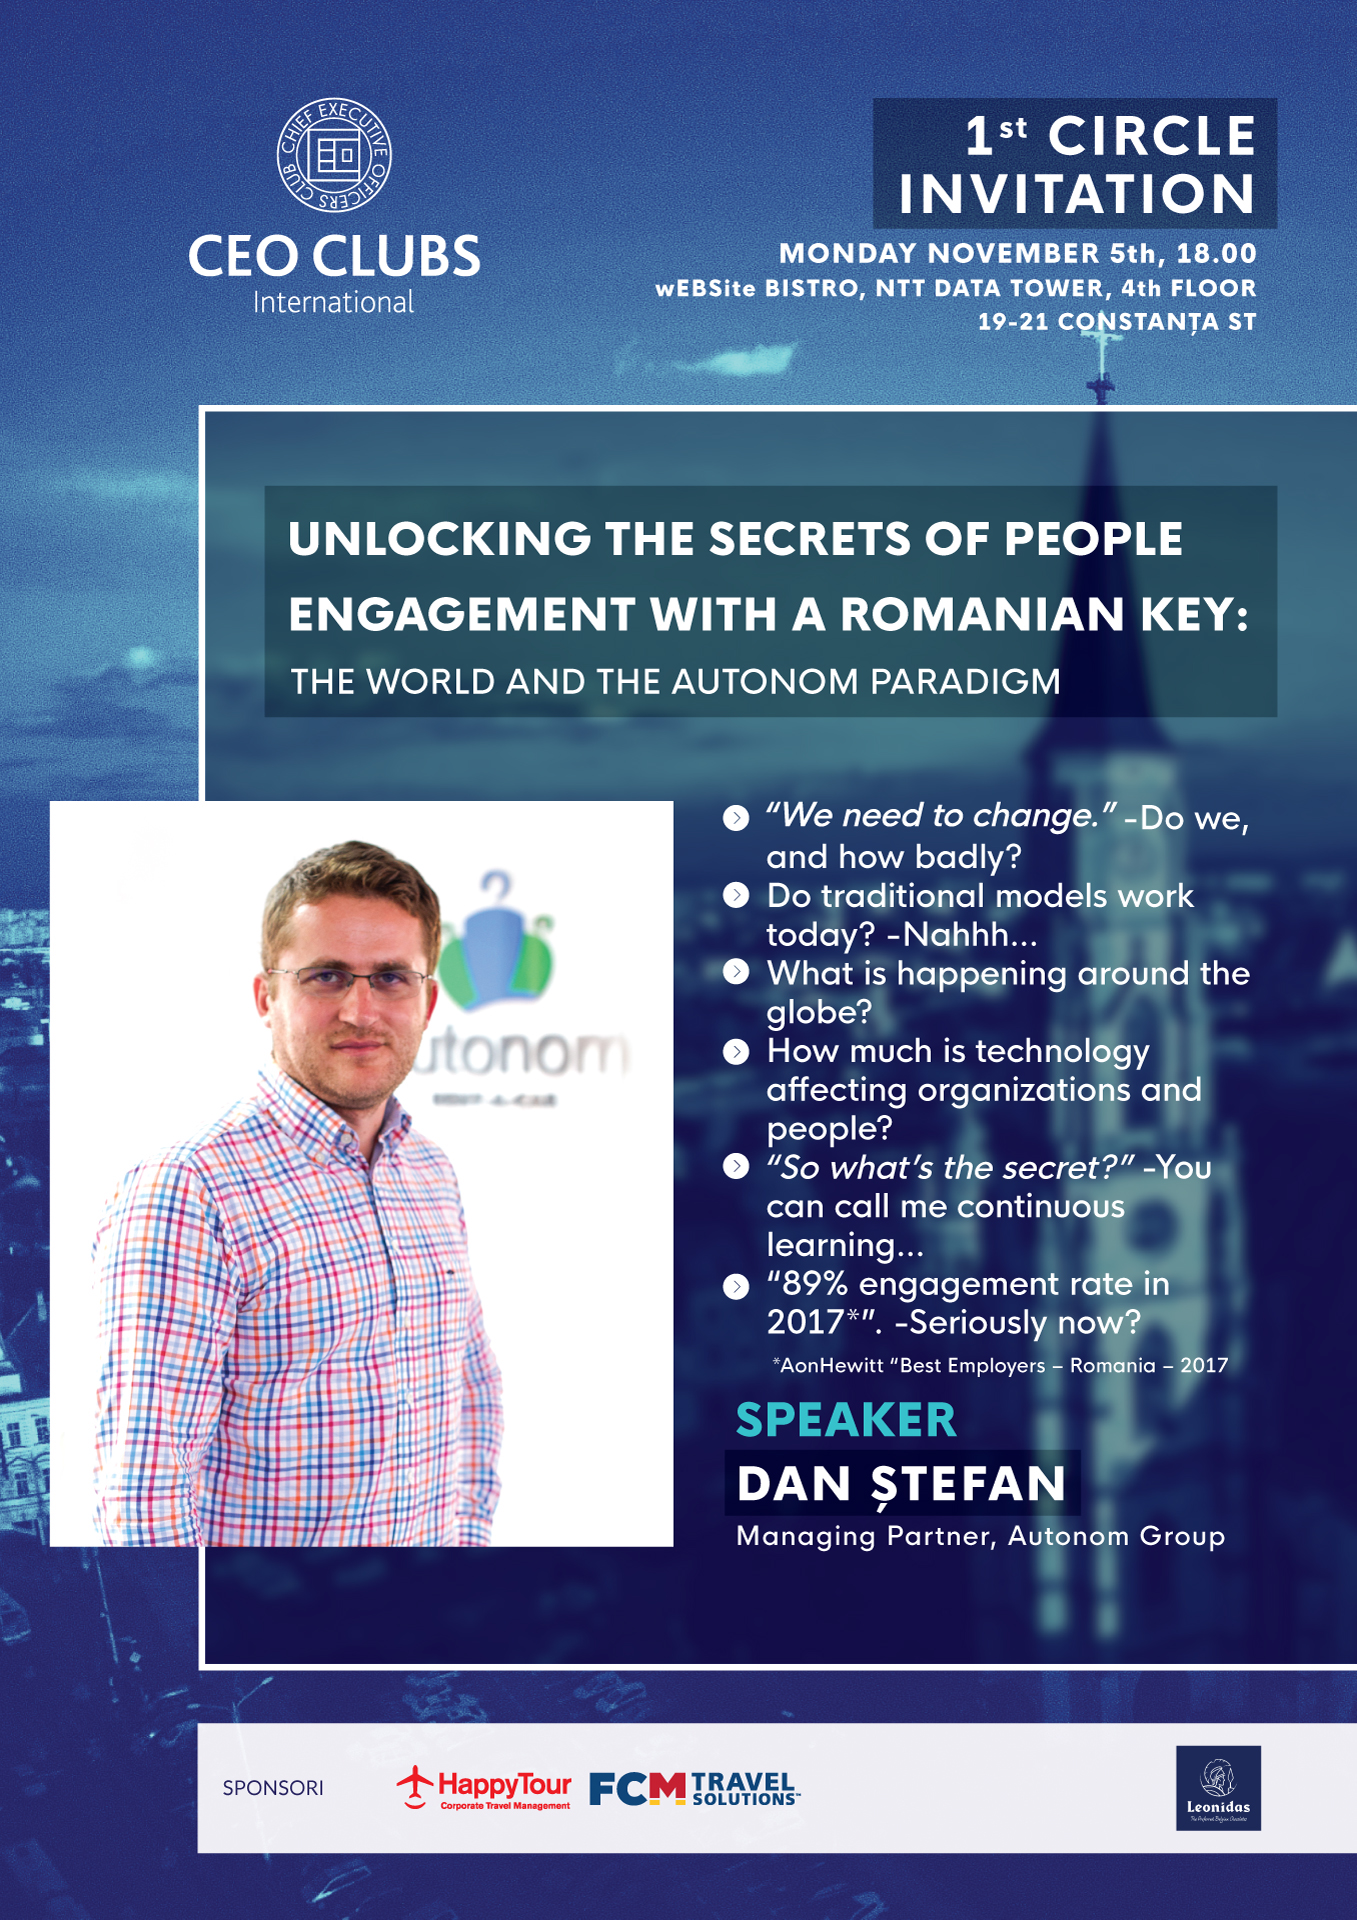 1st Circle: Unlocking the secrets of people with a Romanian key: The World and the AUTONOM paradigm